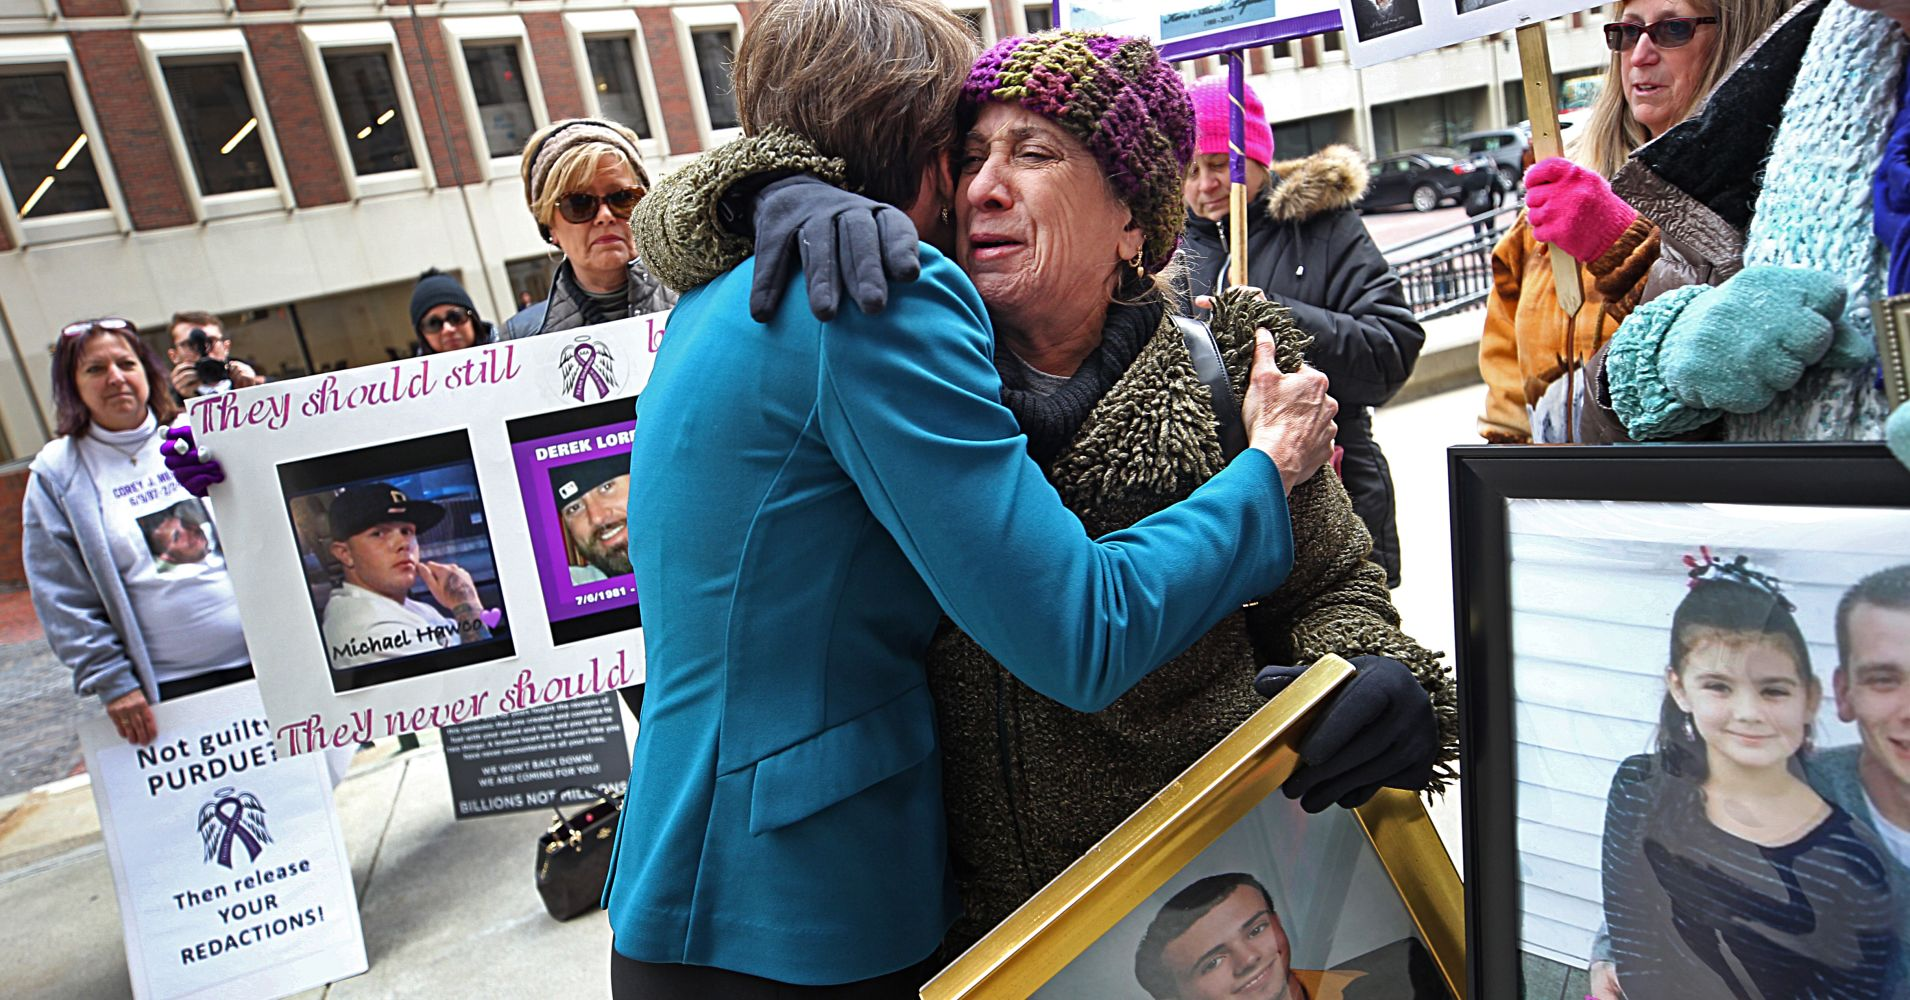 Attorney General Maura Healey hugs Paula Haddad, whose son Jordan died from opioids at the age of 26, as Healey entered the courthouse at Suffolk Superior Court in Boston for a status update on the Attorney General's suit against Purdue Pharma on Jan. 25, 2019.